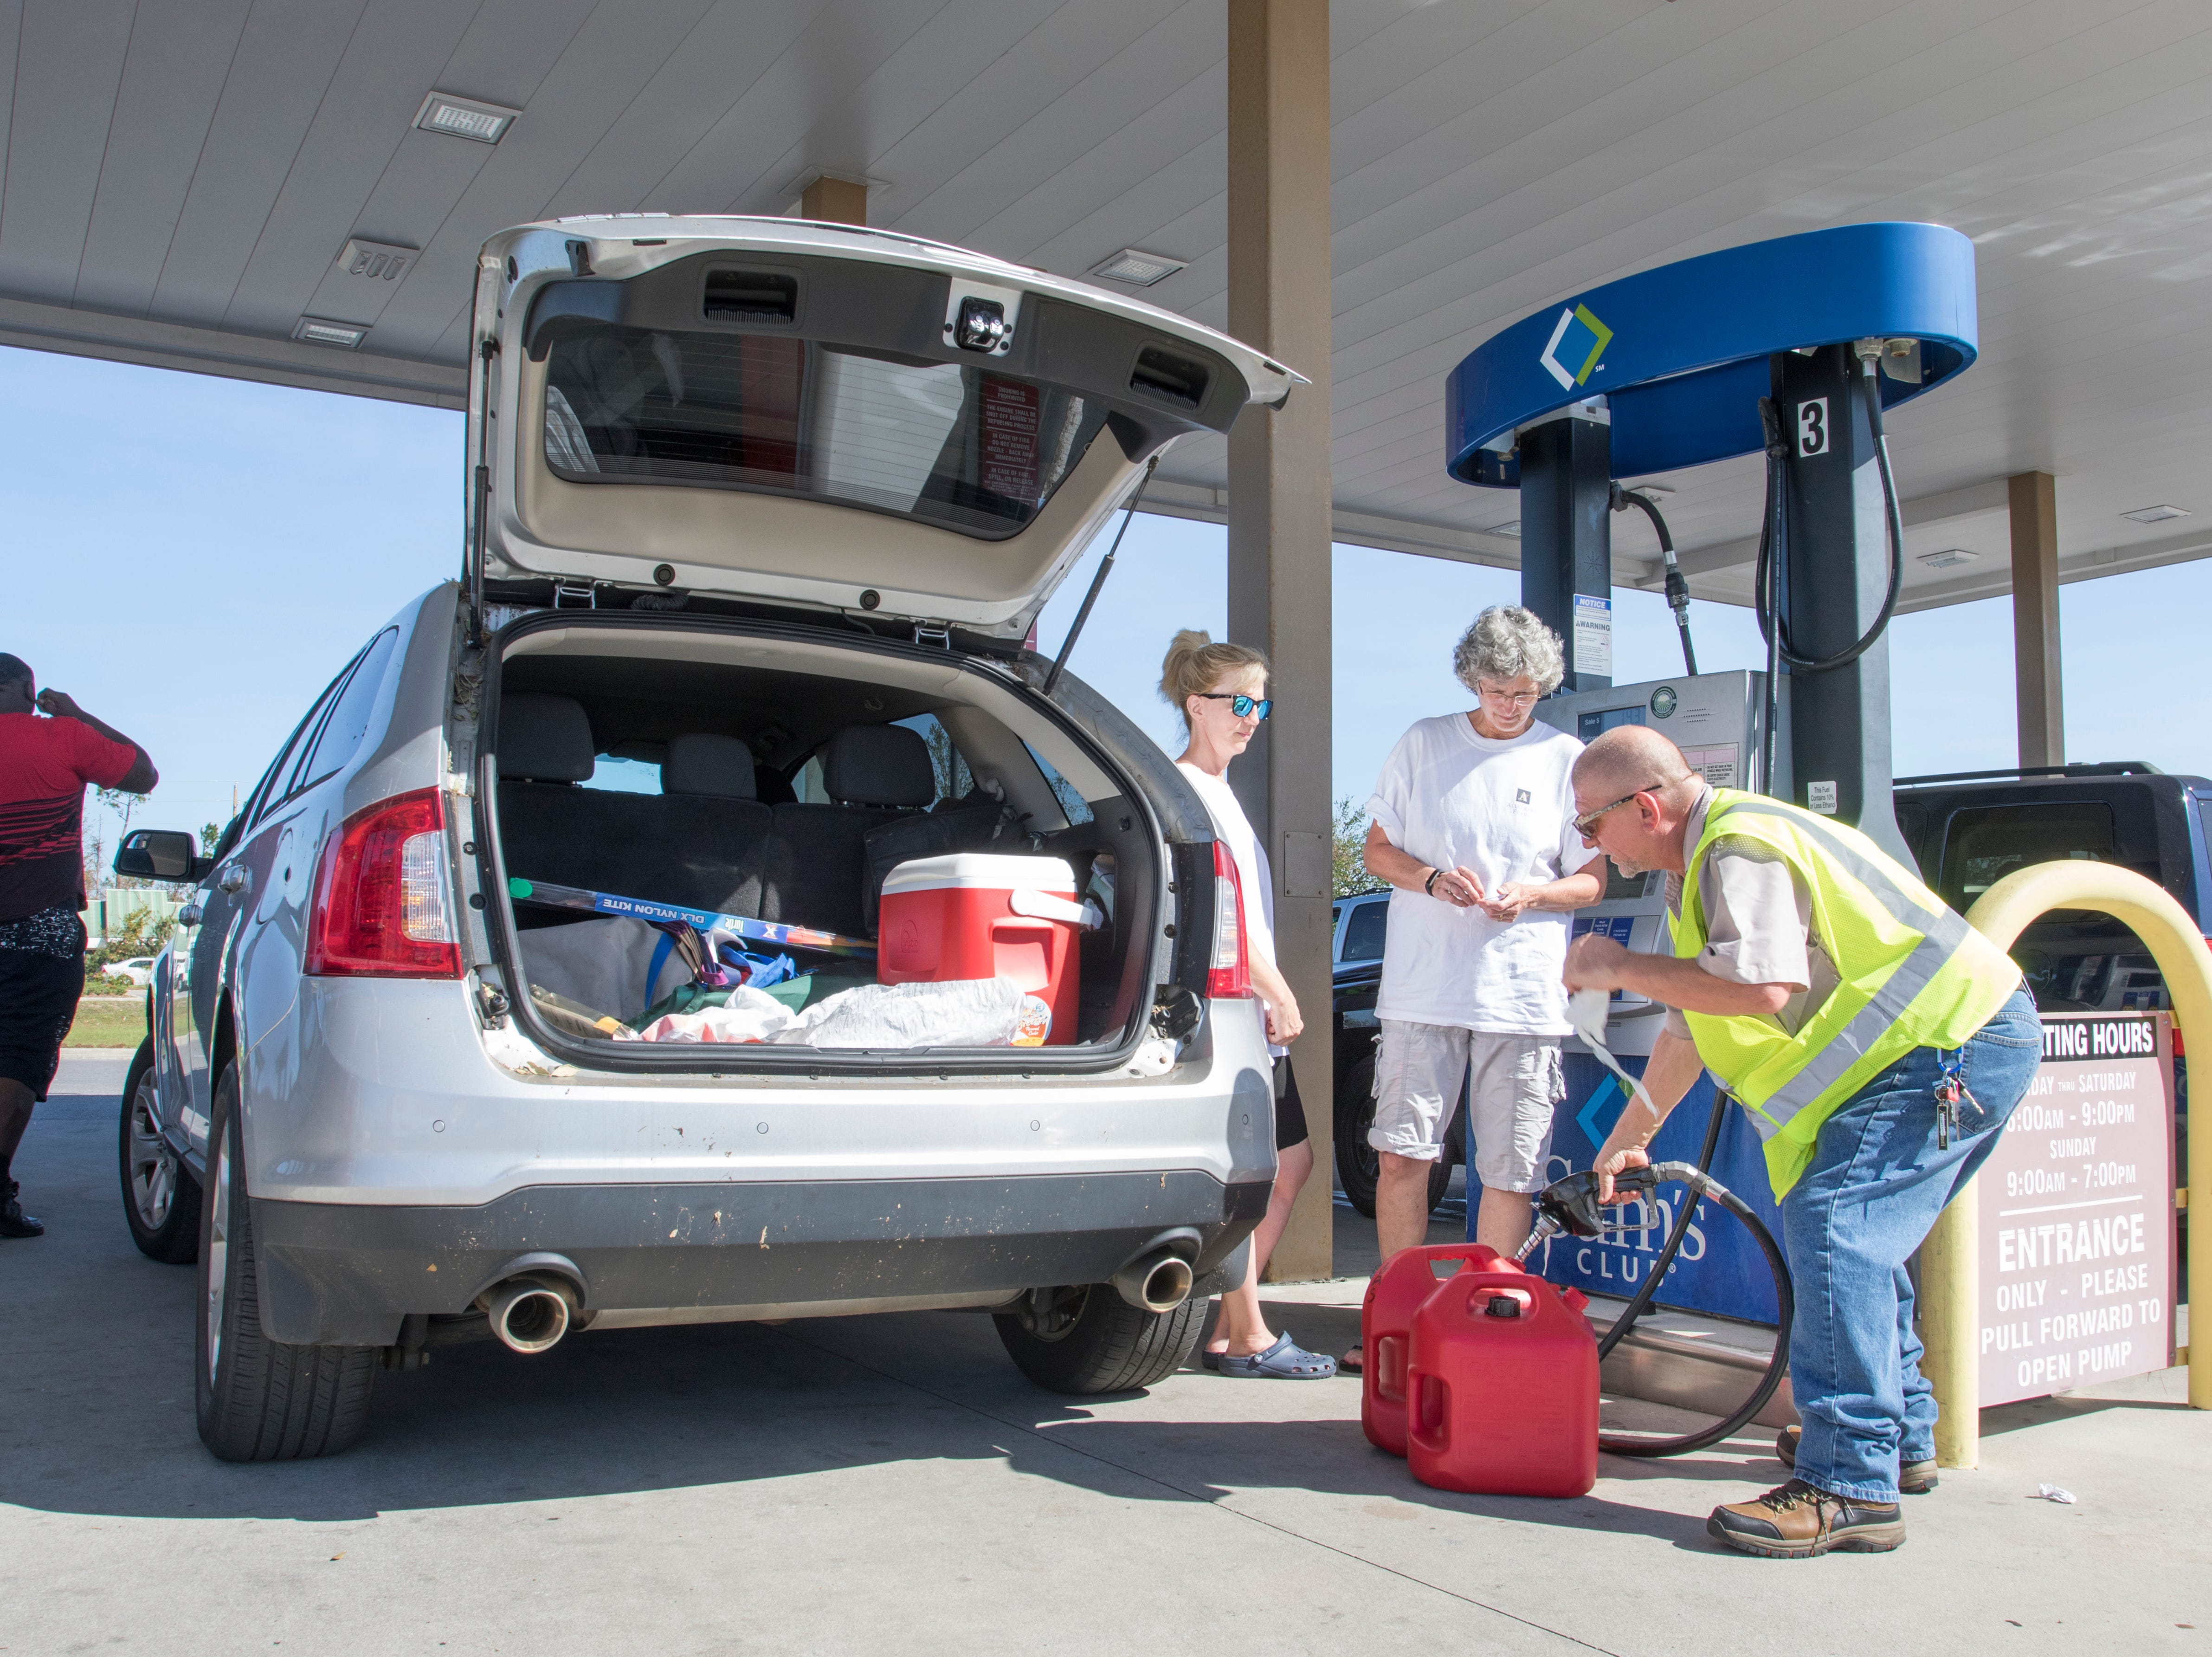 Bob Orlick, of Port Charlotte, Florida, helps fill gas containers for Cathy Meunier, left, and Betsy Straley at the Sam's Club on West 23rd Street in Panama City, Florida on Wednesday, October 17, 2018.  Drivers are thrilled that their wait for gas has gone from up to 4 hours earlier in the week down to 30 to 45 minutes today.